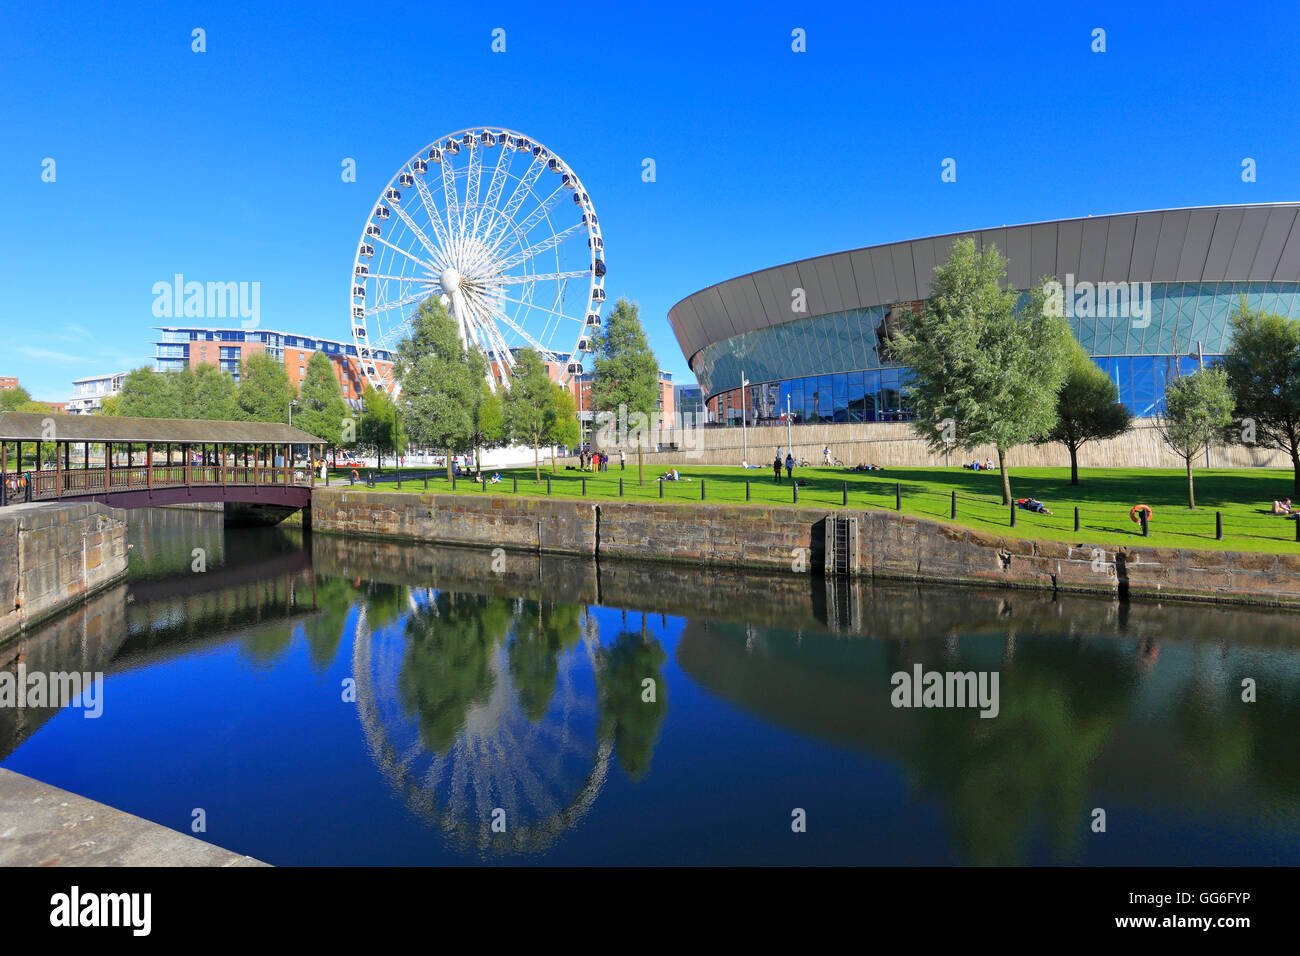 Dukes Dock and The Wheel of Liverpool, Keel Wharf, Liverpool, Merseyside, England, UK. - Stock Image